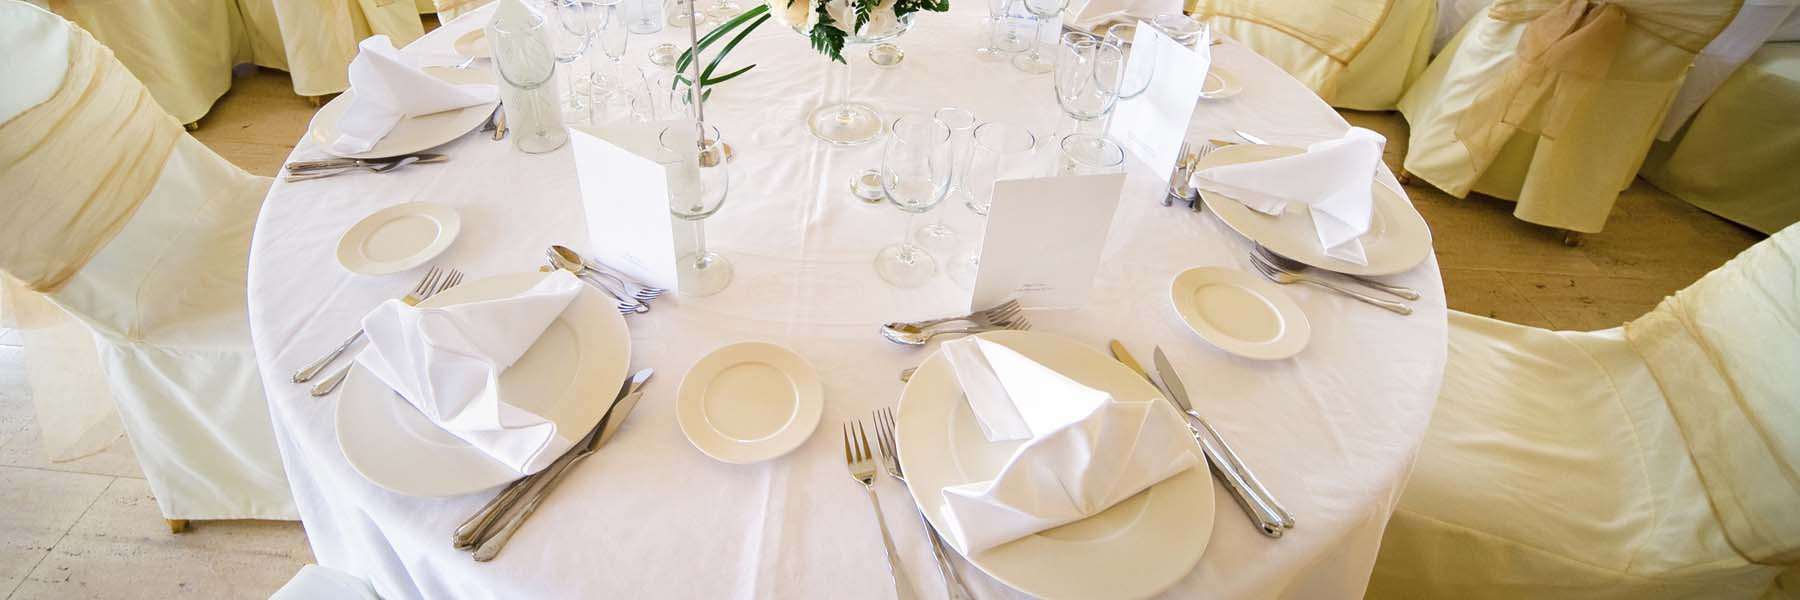 Tablecloth Hire